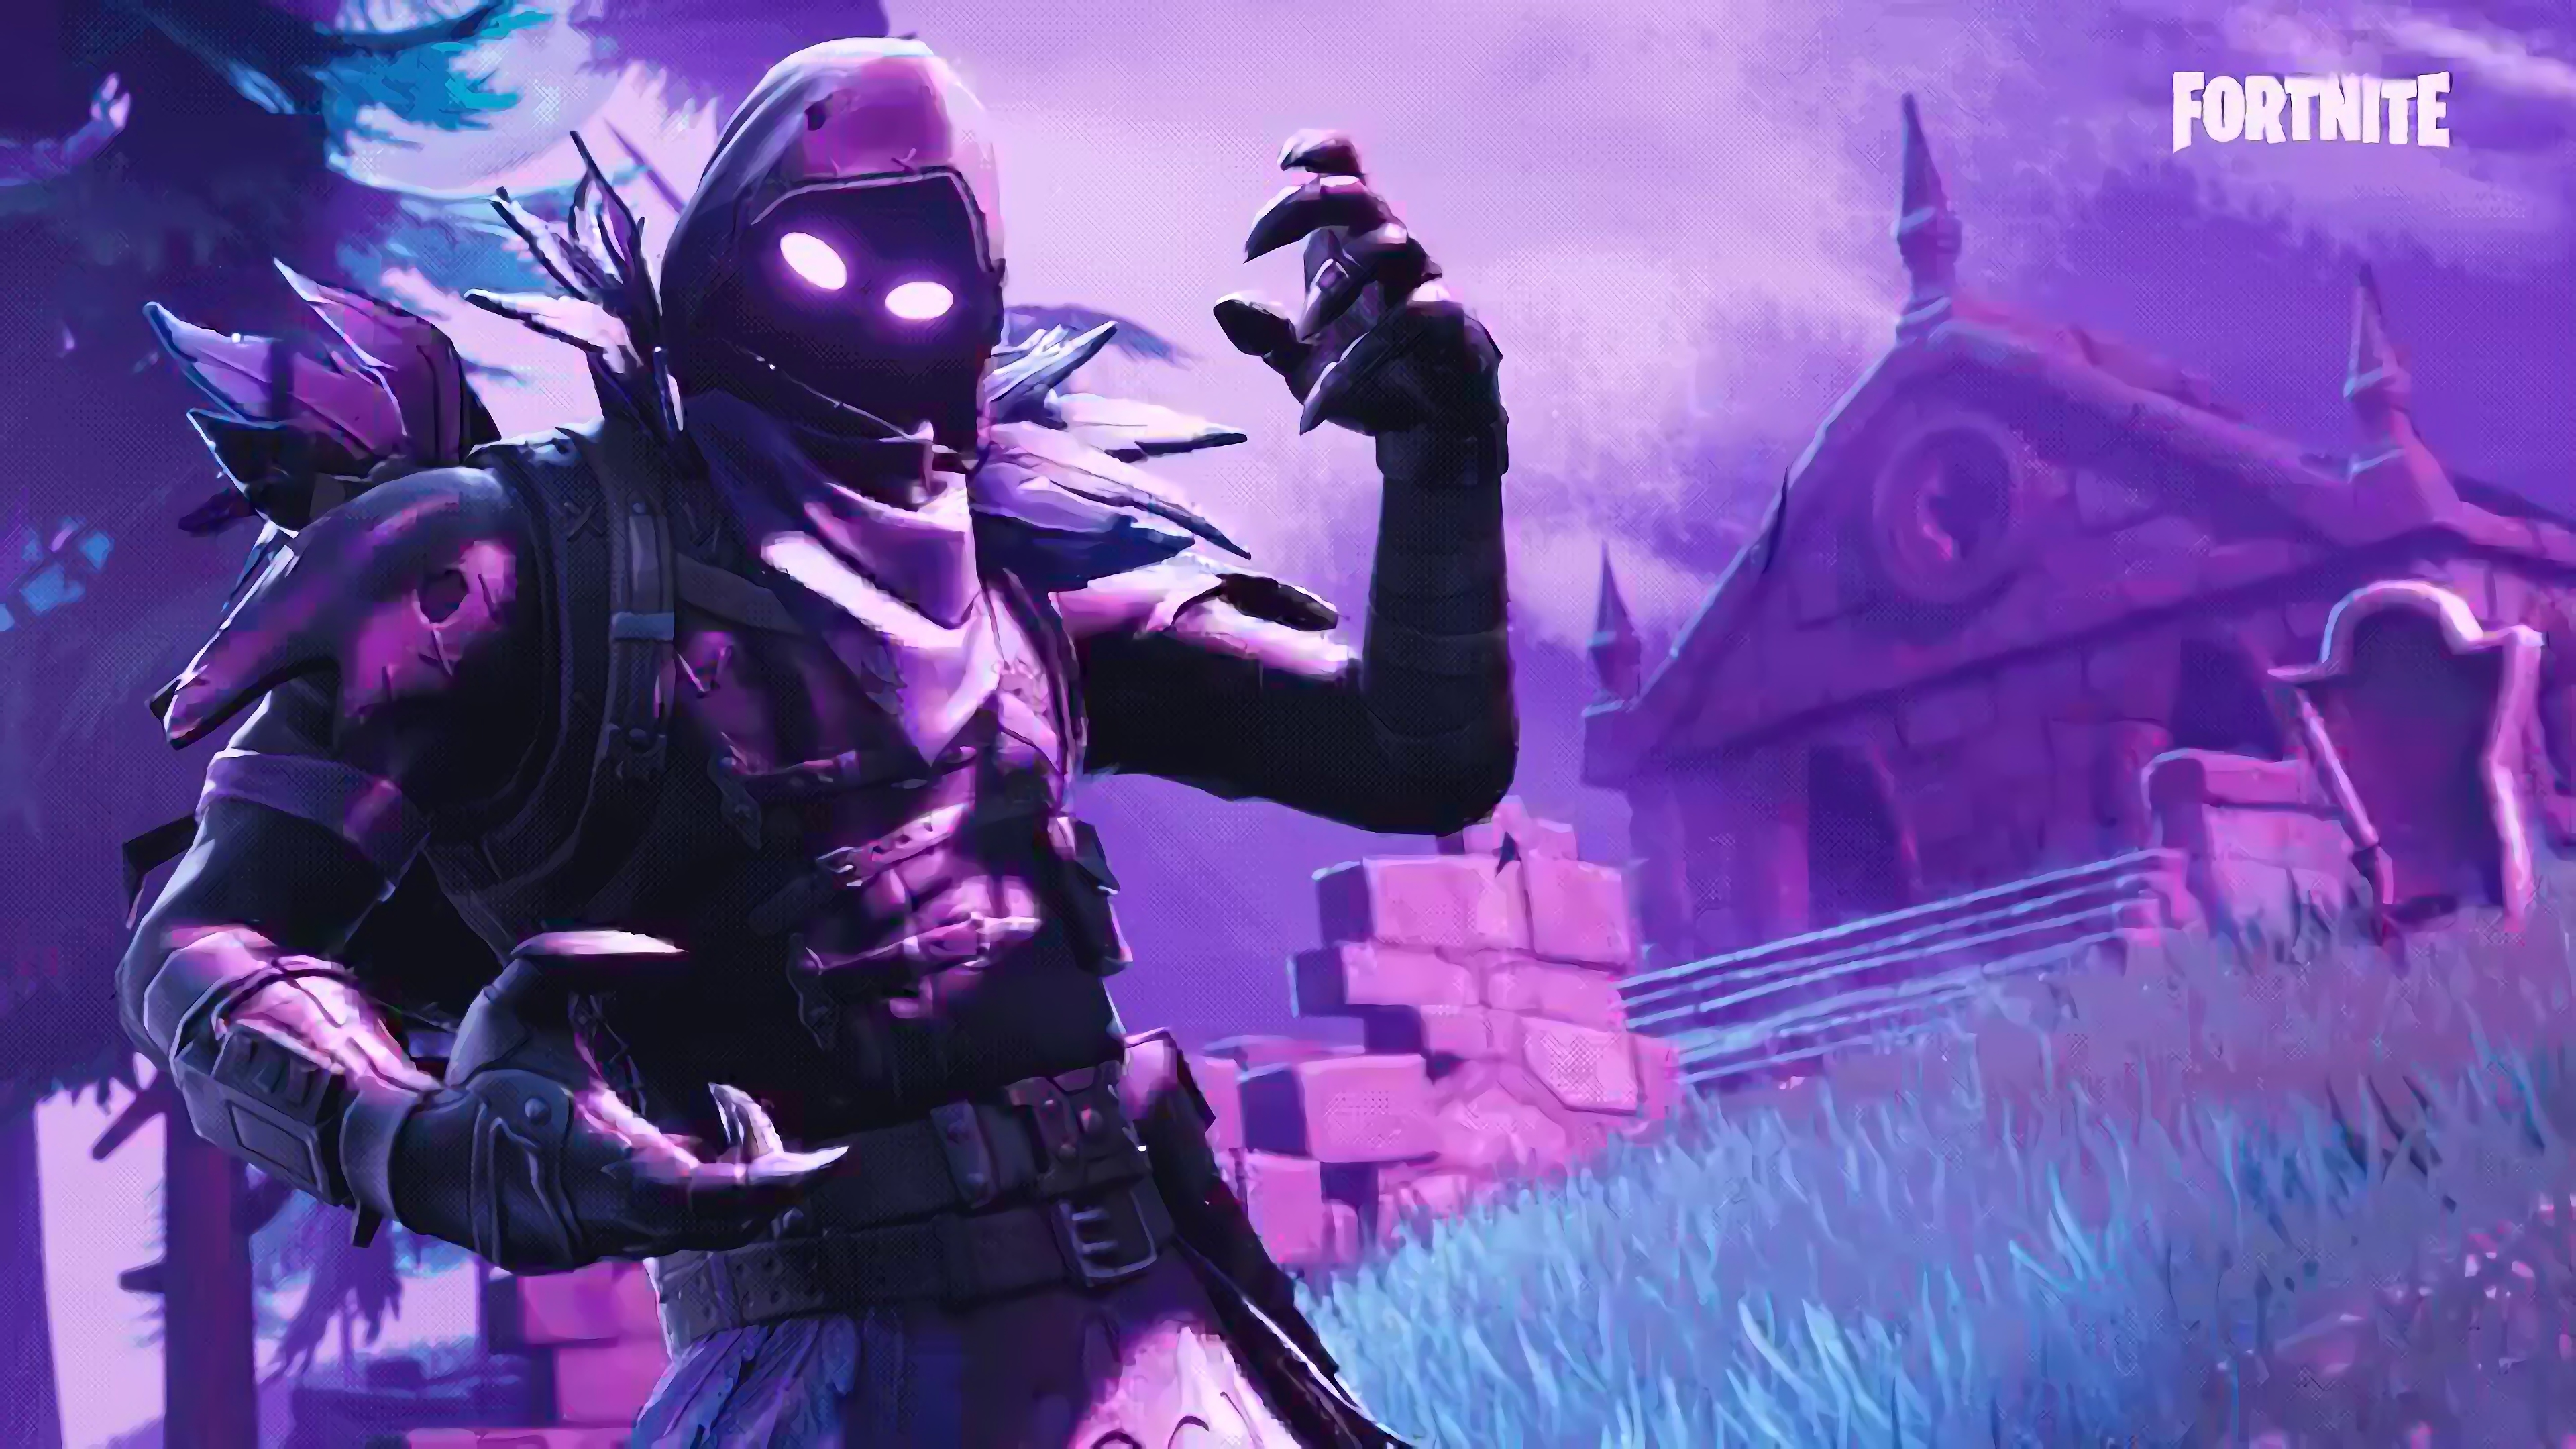 Fortnite Wallpaper HD 4K 8K   Battle Royale 3840x2160